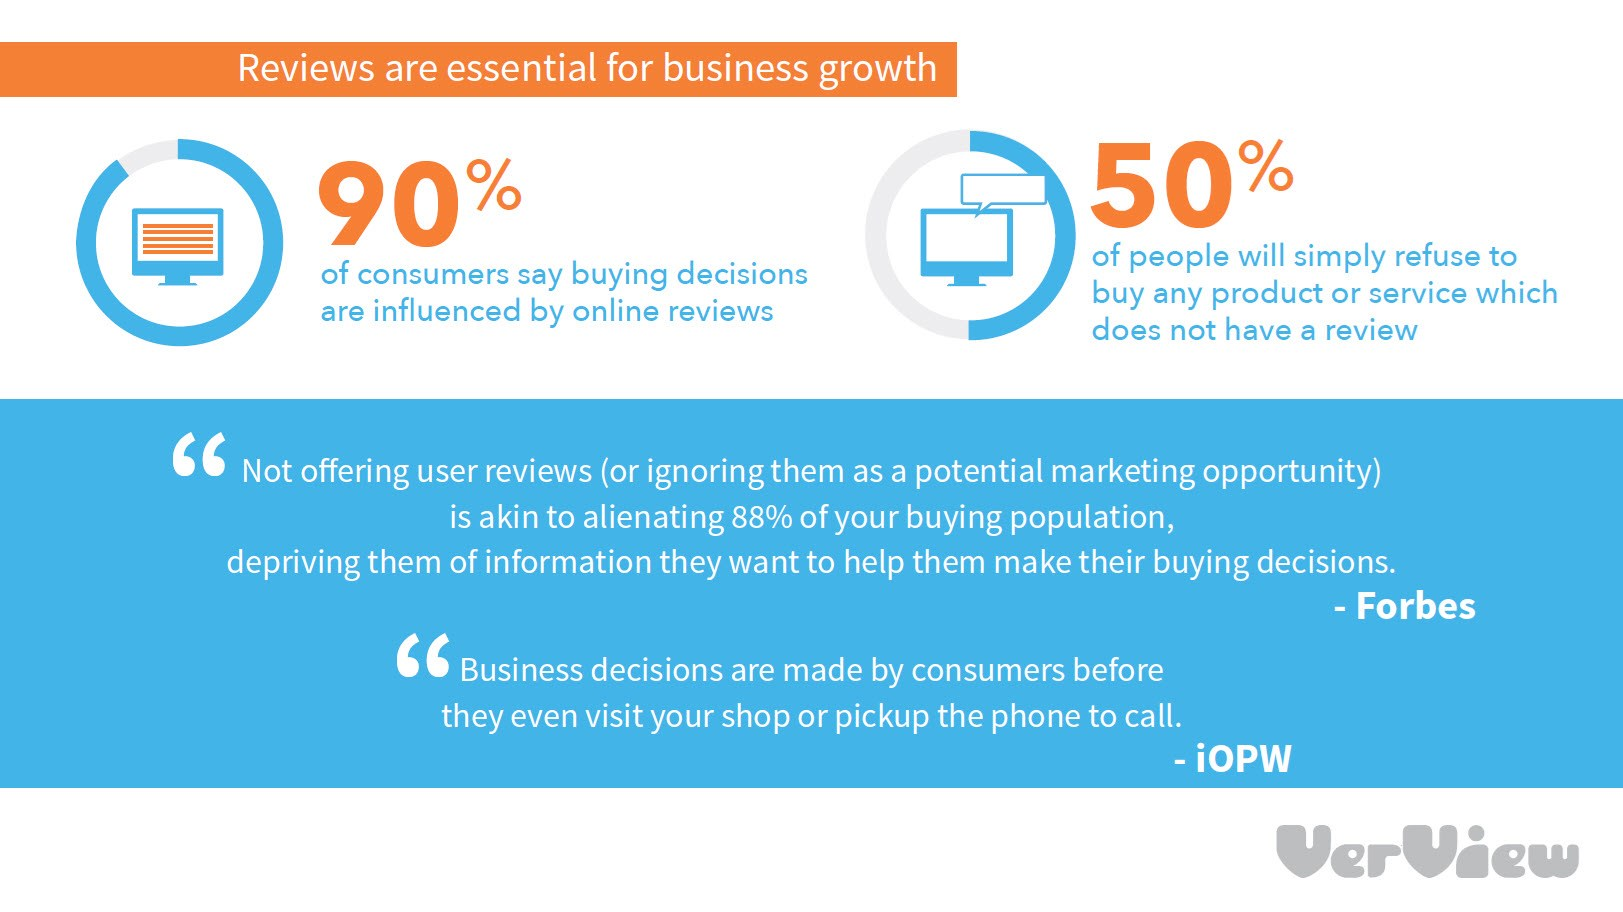 How Important Are Reviews To Your Business